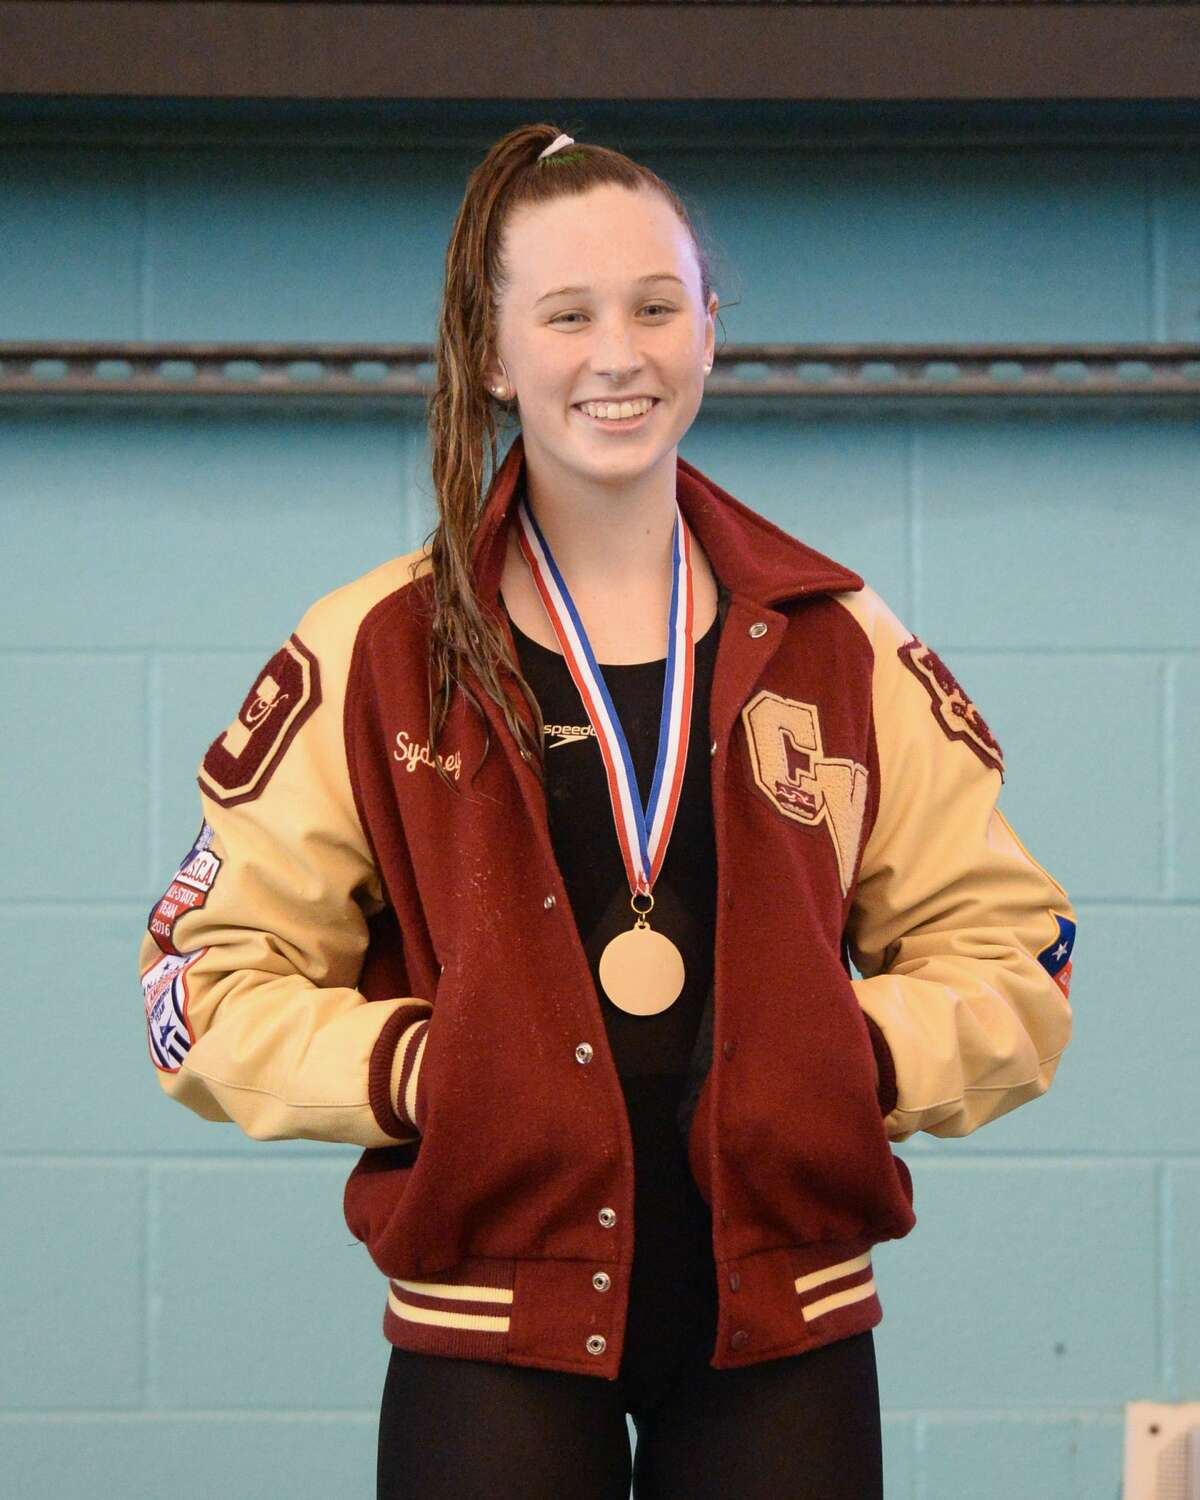 Sydney Stanford of Cy Woods captured first place in the girls 50 yard freestyle at the UIL Conference 5-6A Regional Swimming and Diving Championship on February 4, 2017 at the Don Cook Natatorium, Sugar Land, TX.